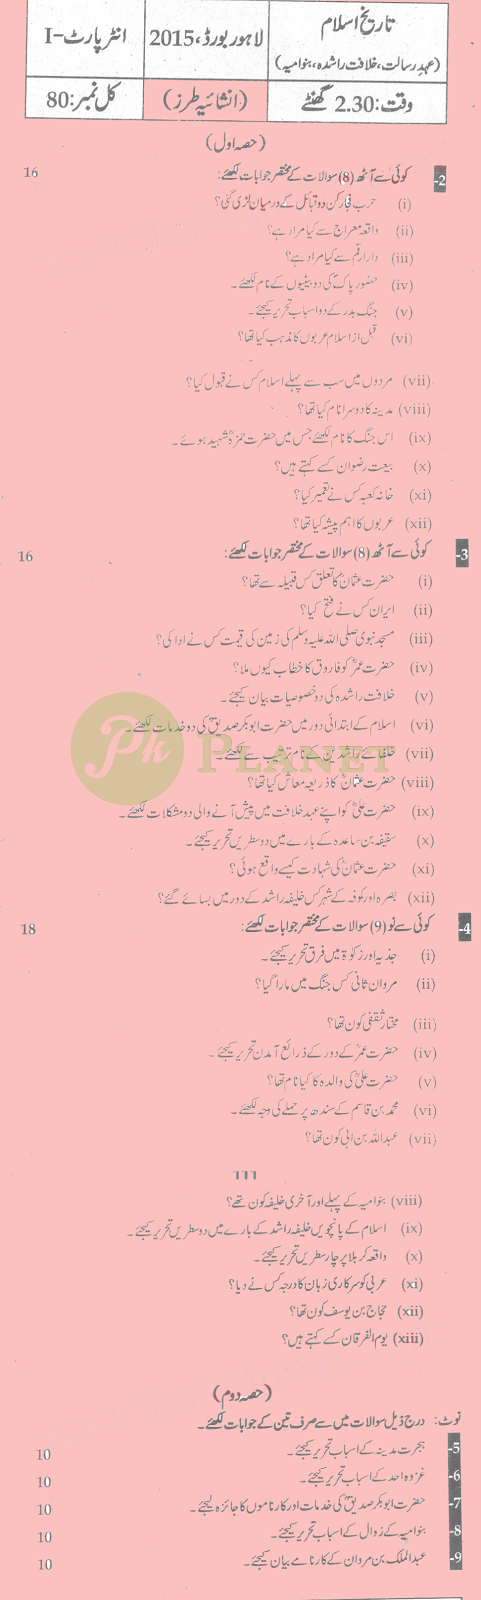 Intermediate Part 1 Past Papers Lahore Board History of Islam